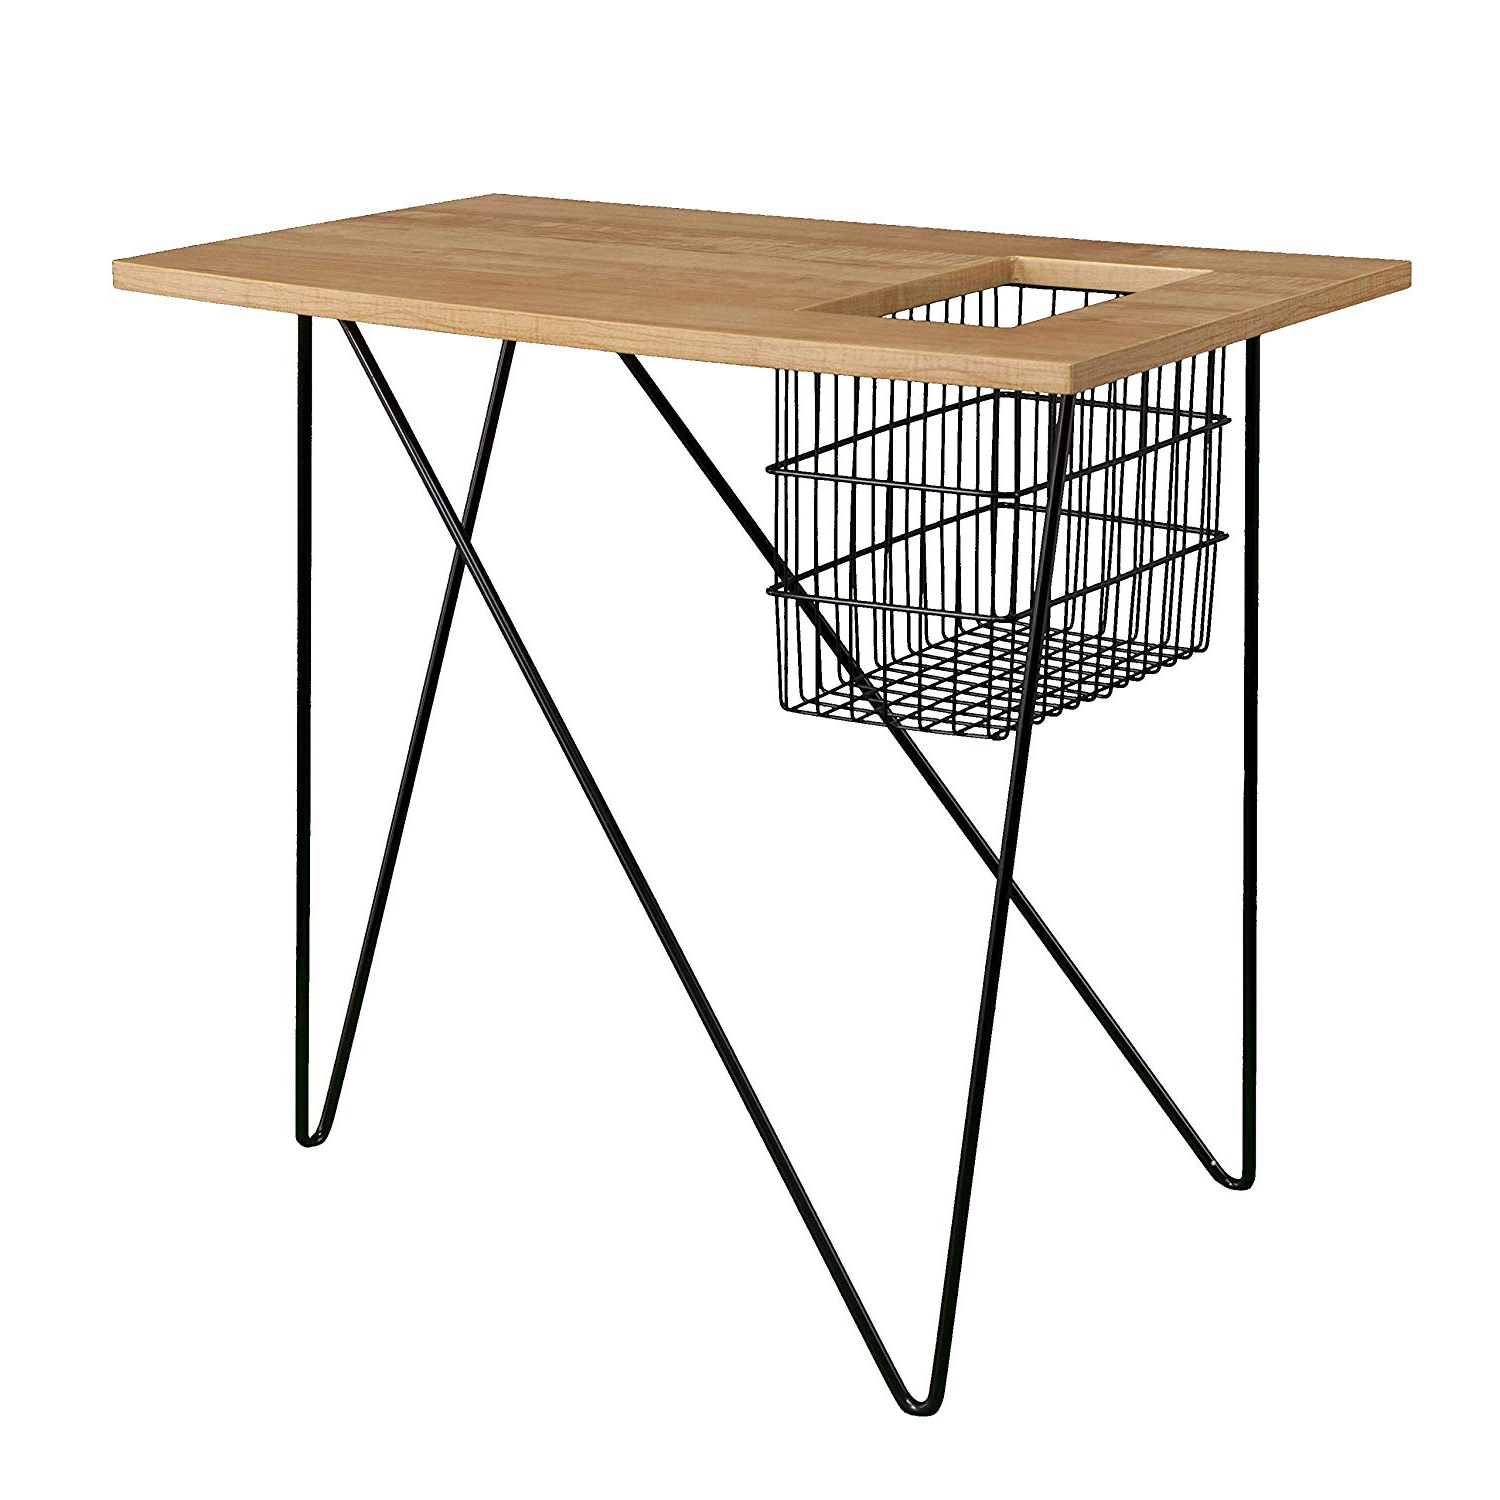 Favorite Acacia Dining Tables With Black Rocket Legs Within Amazon: Southern Enterprises Amz6312Co Nyda End Table (View 19 of 25)